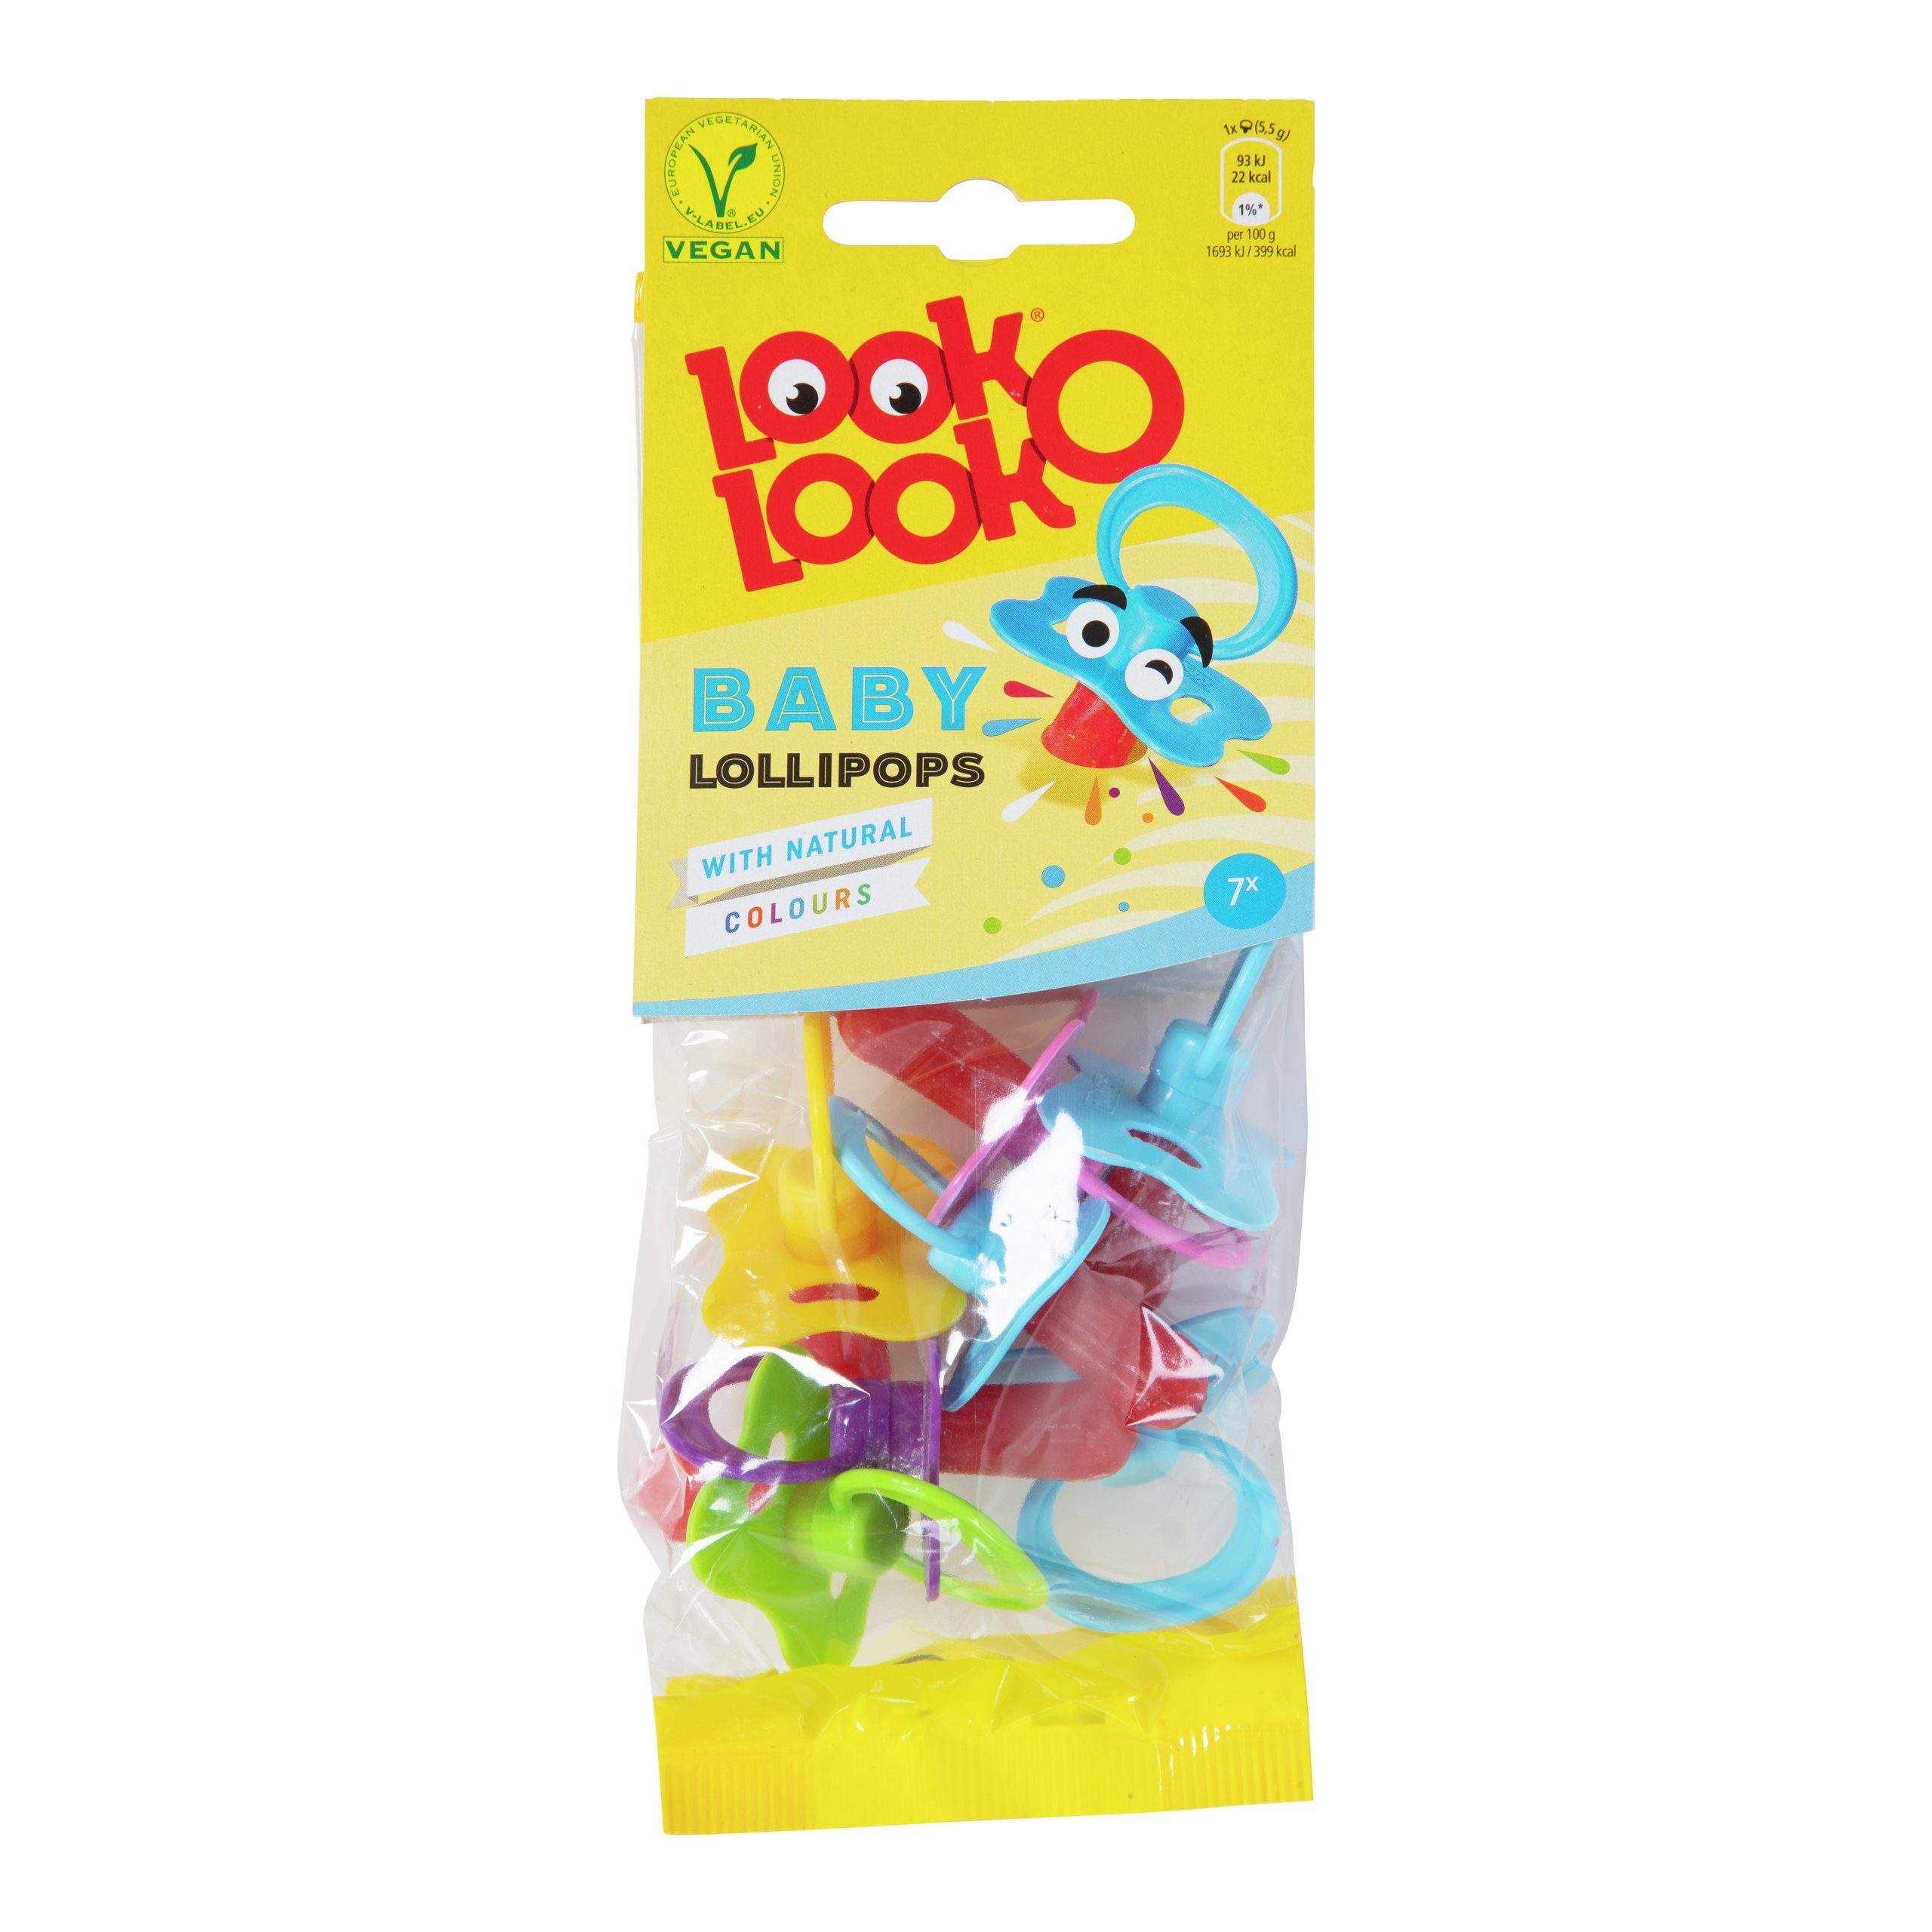 BABY LOLLIPOPS 37G LOOK-O-LOOK-DRO2019